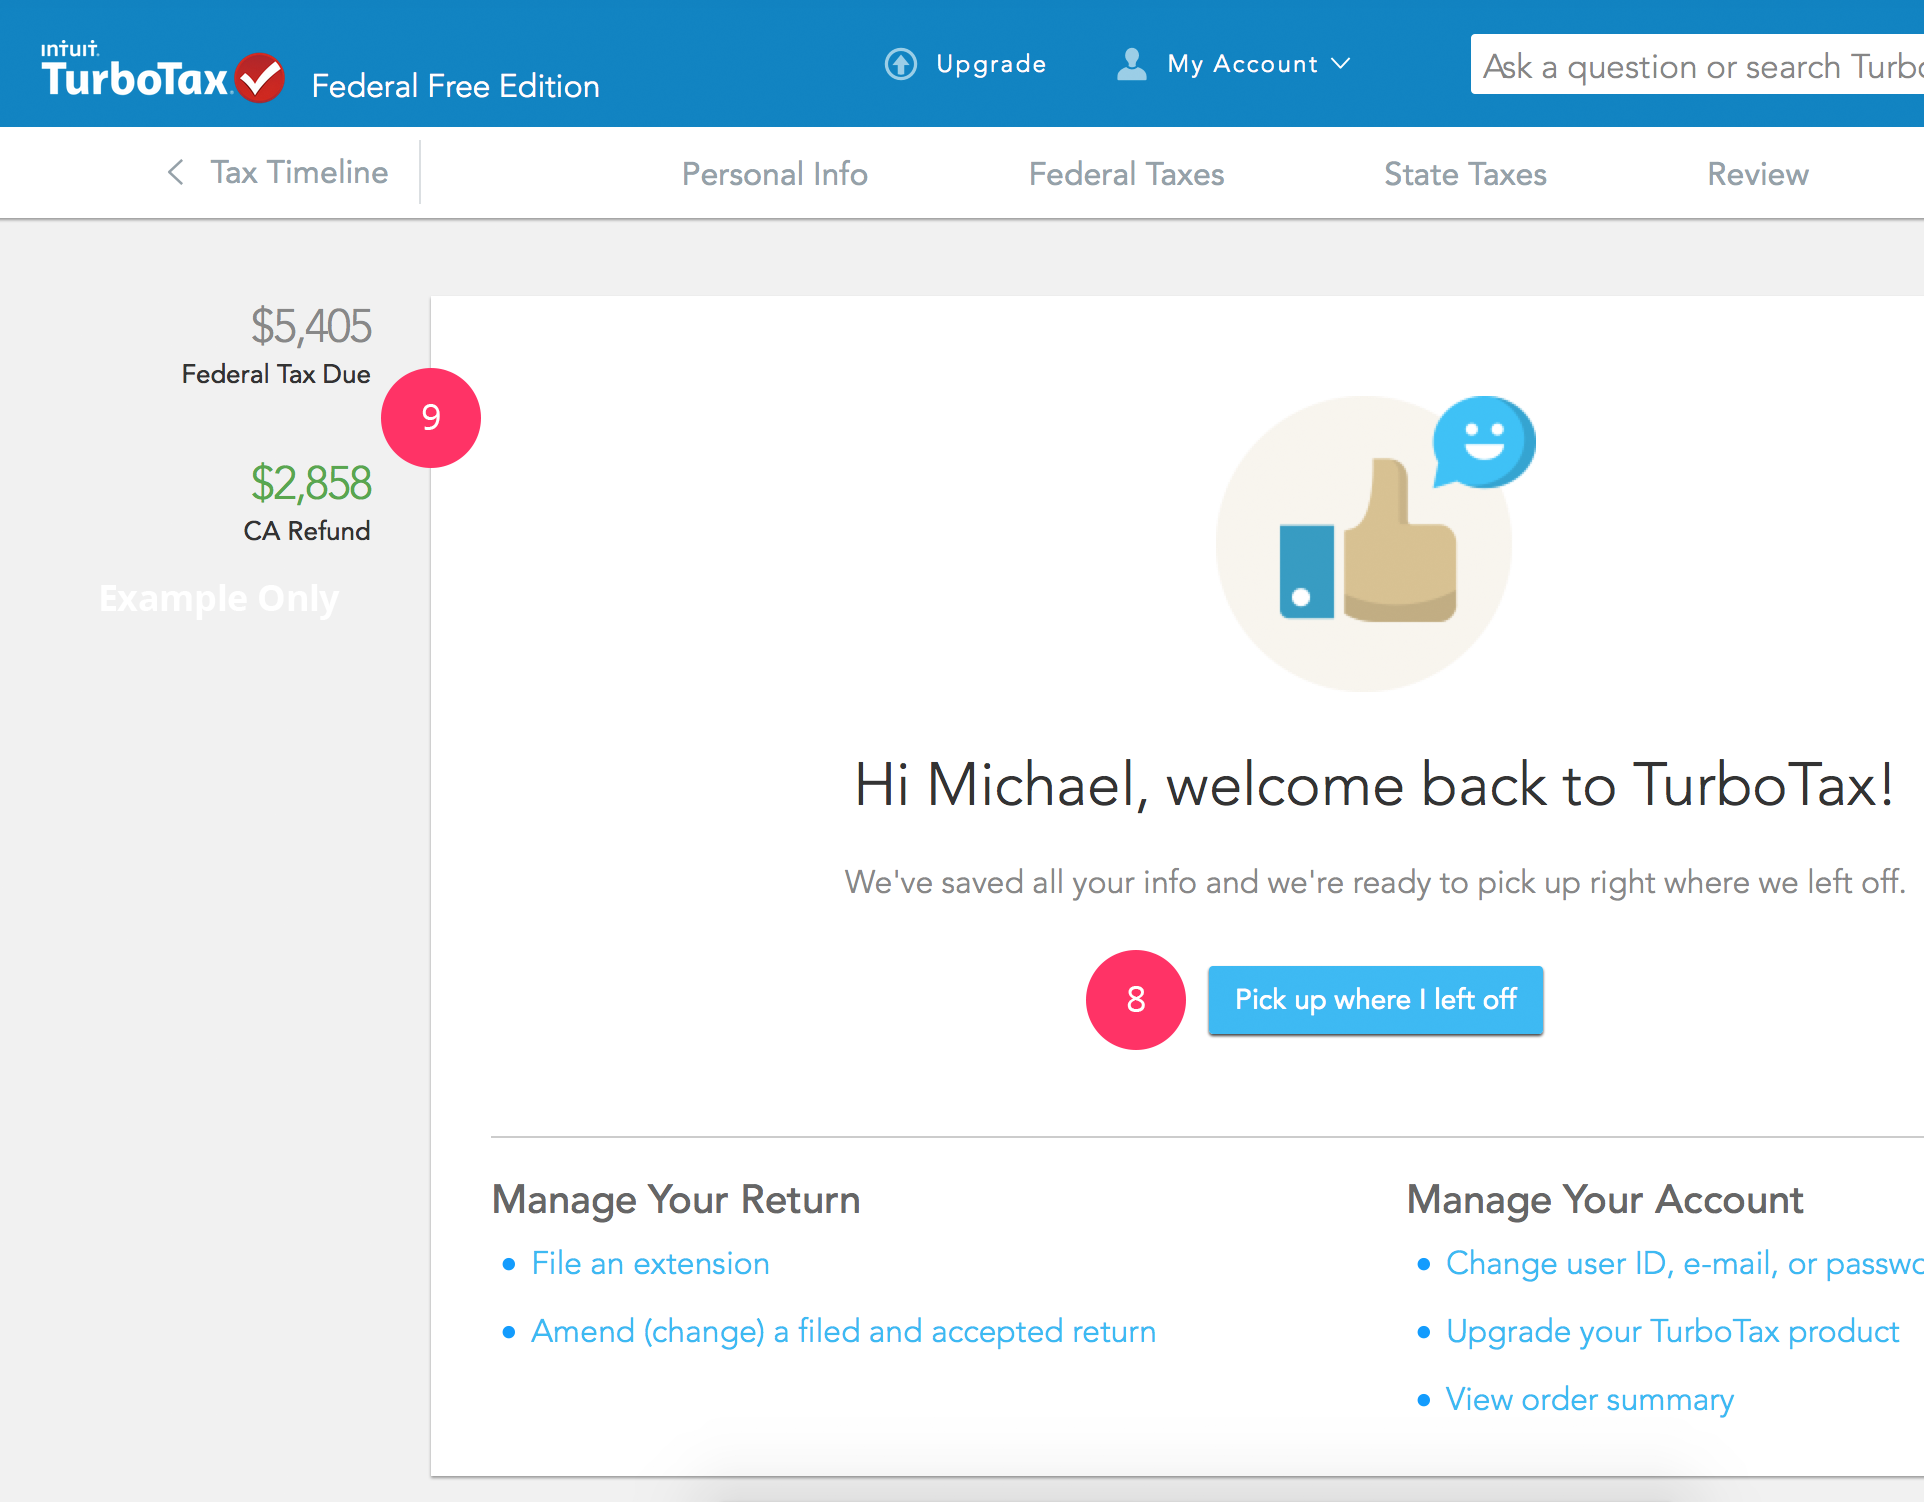 TurboTax makes filing (almost) fun